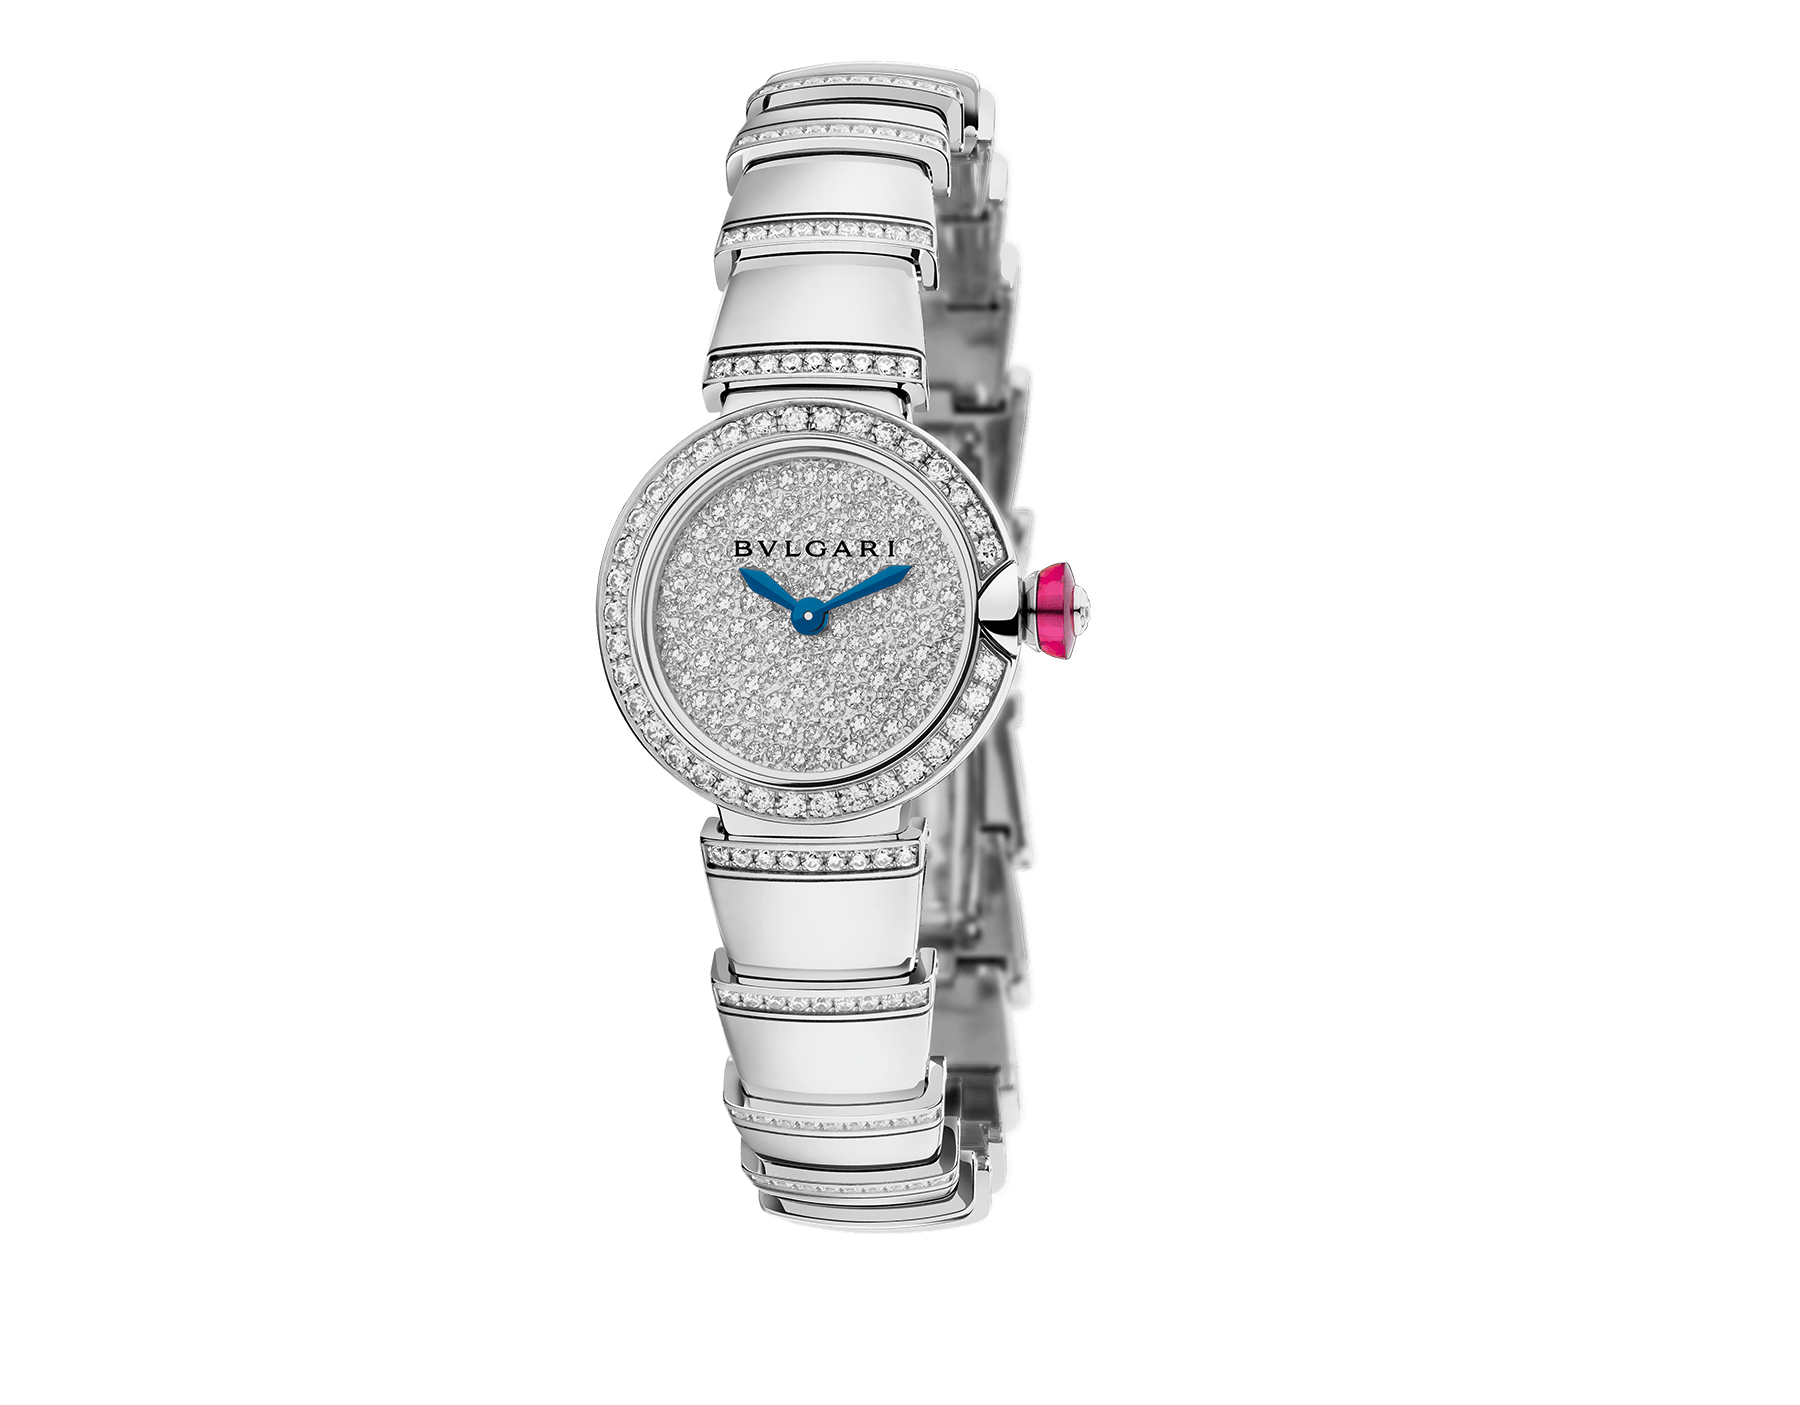 Piccola Lvcea watch in 18kt white gold case and bracelet, both set with brillant cut-diamonds and full pavé diamond dial. 102515 image 1